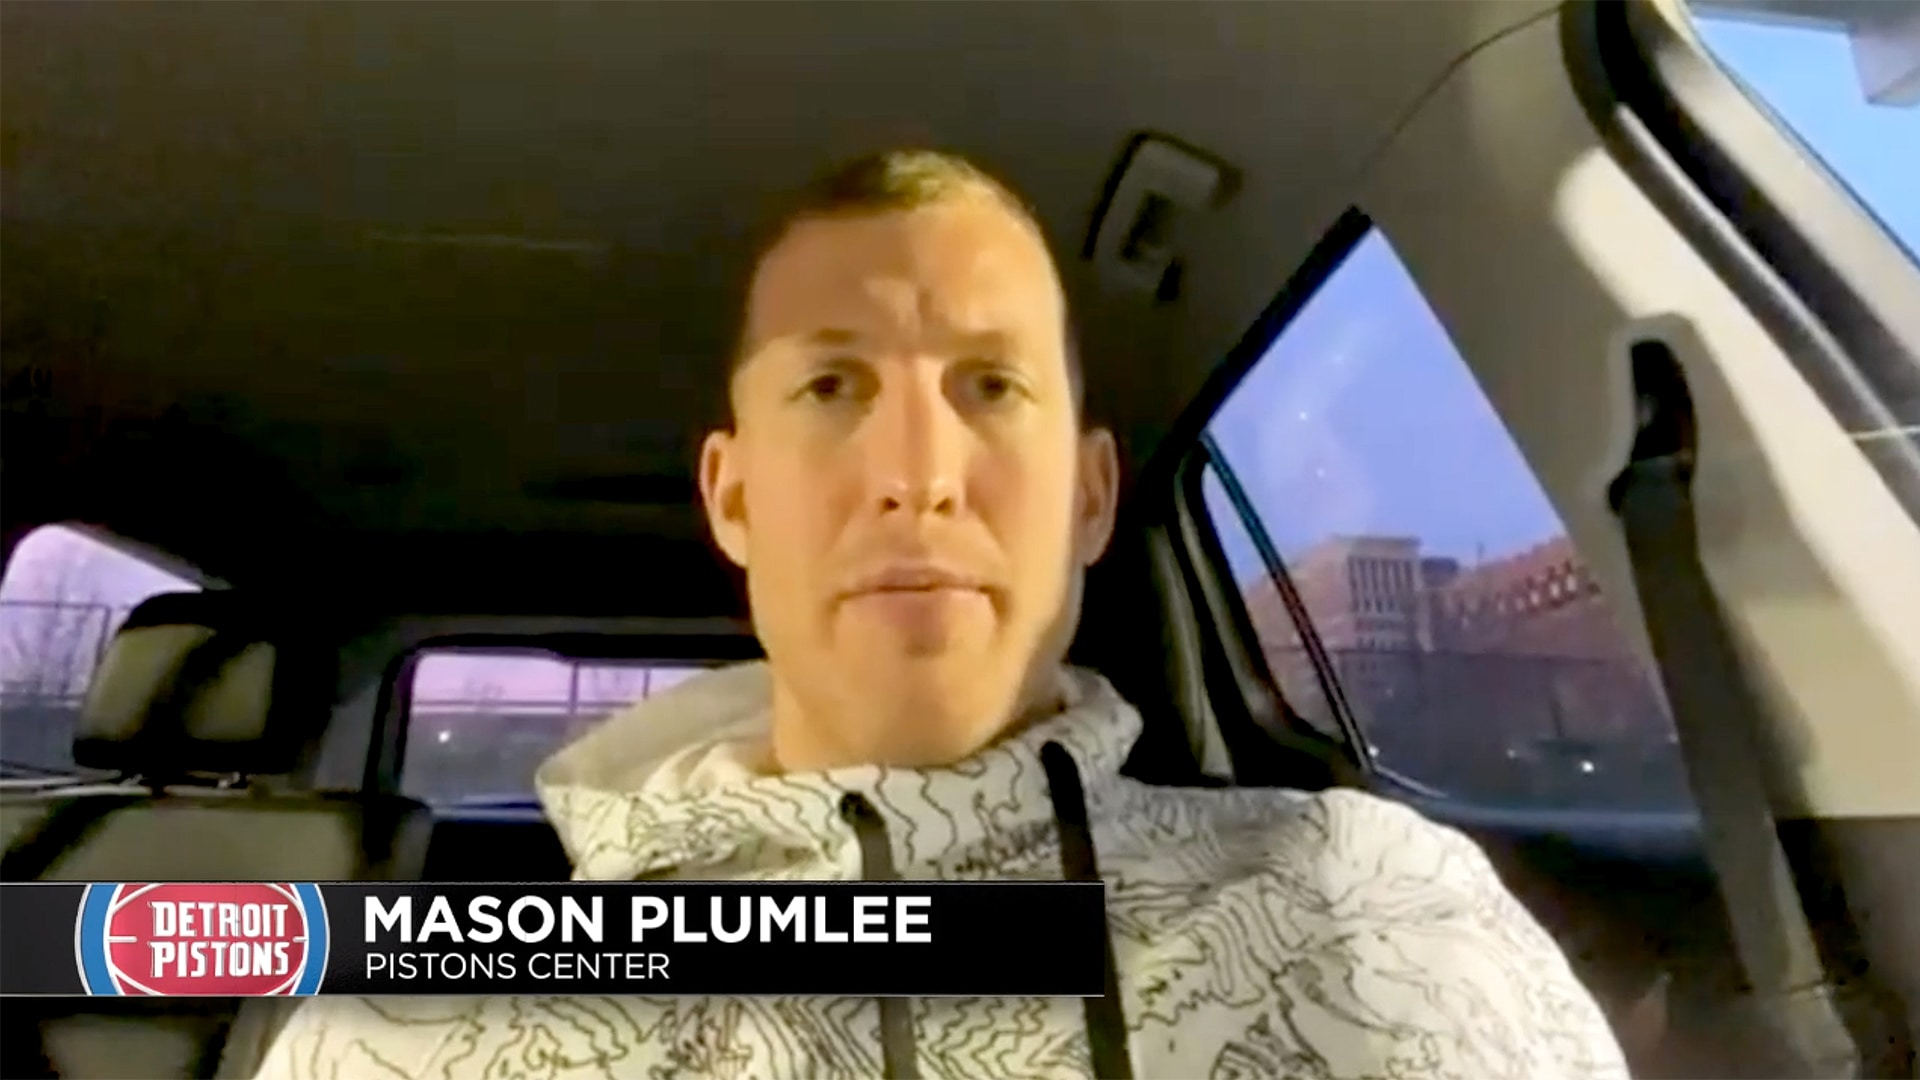 Media Availability: Mason Plumlee and Jahlil Okafor